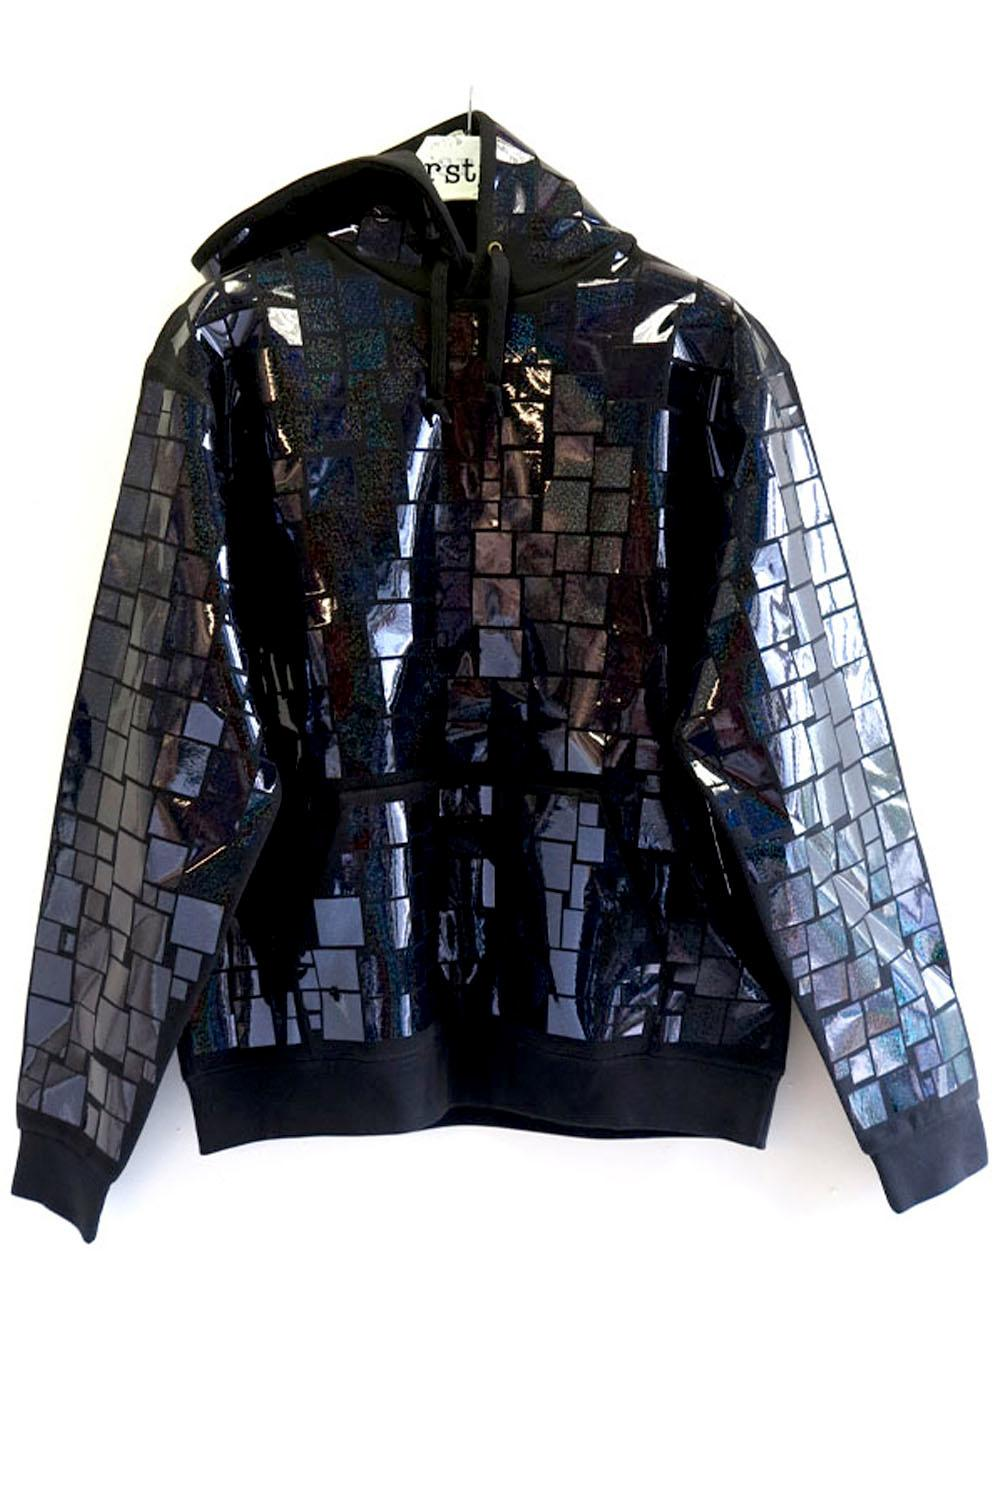 MOSAIC ALLOVER HOODY - 5